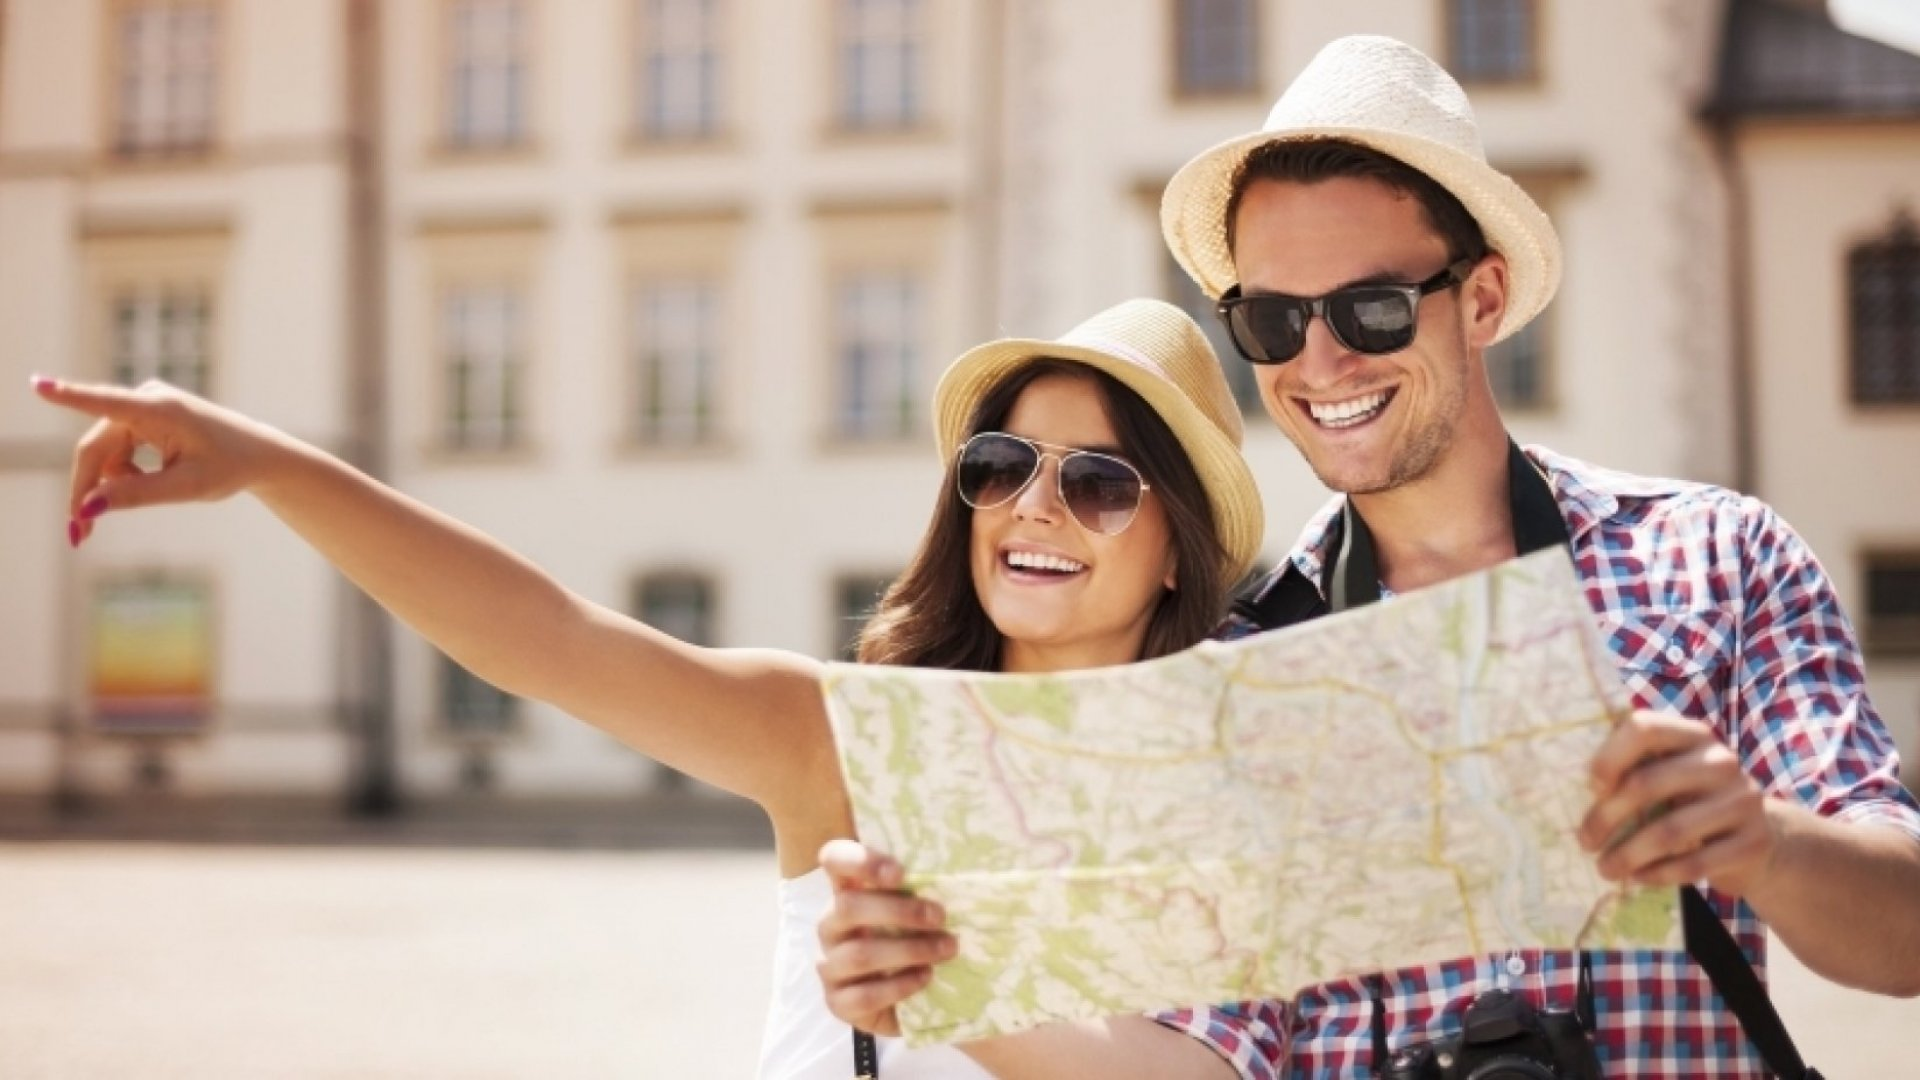 Want to Know Yourself Better? Put This Twist on Your Travels